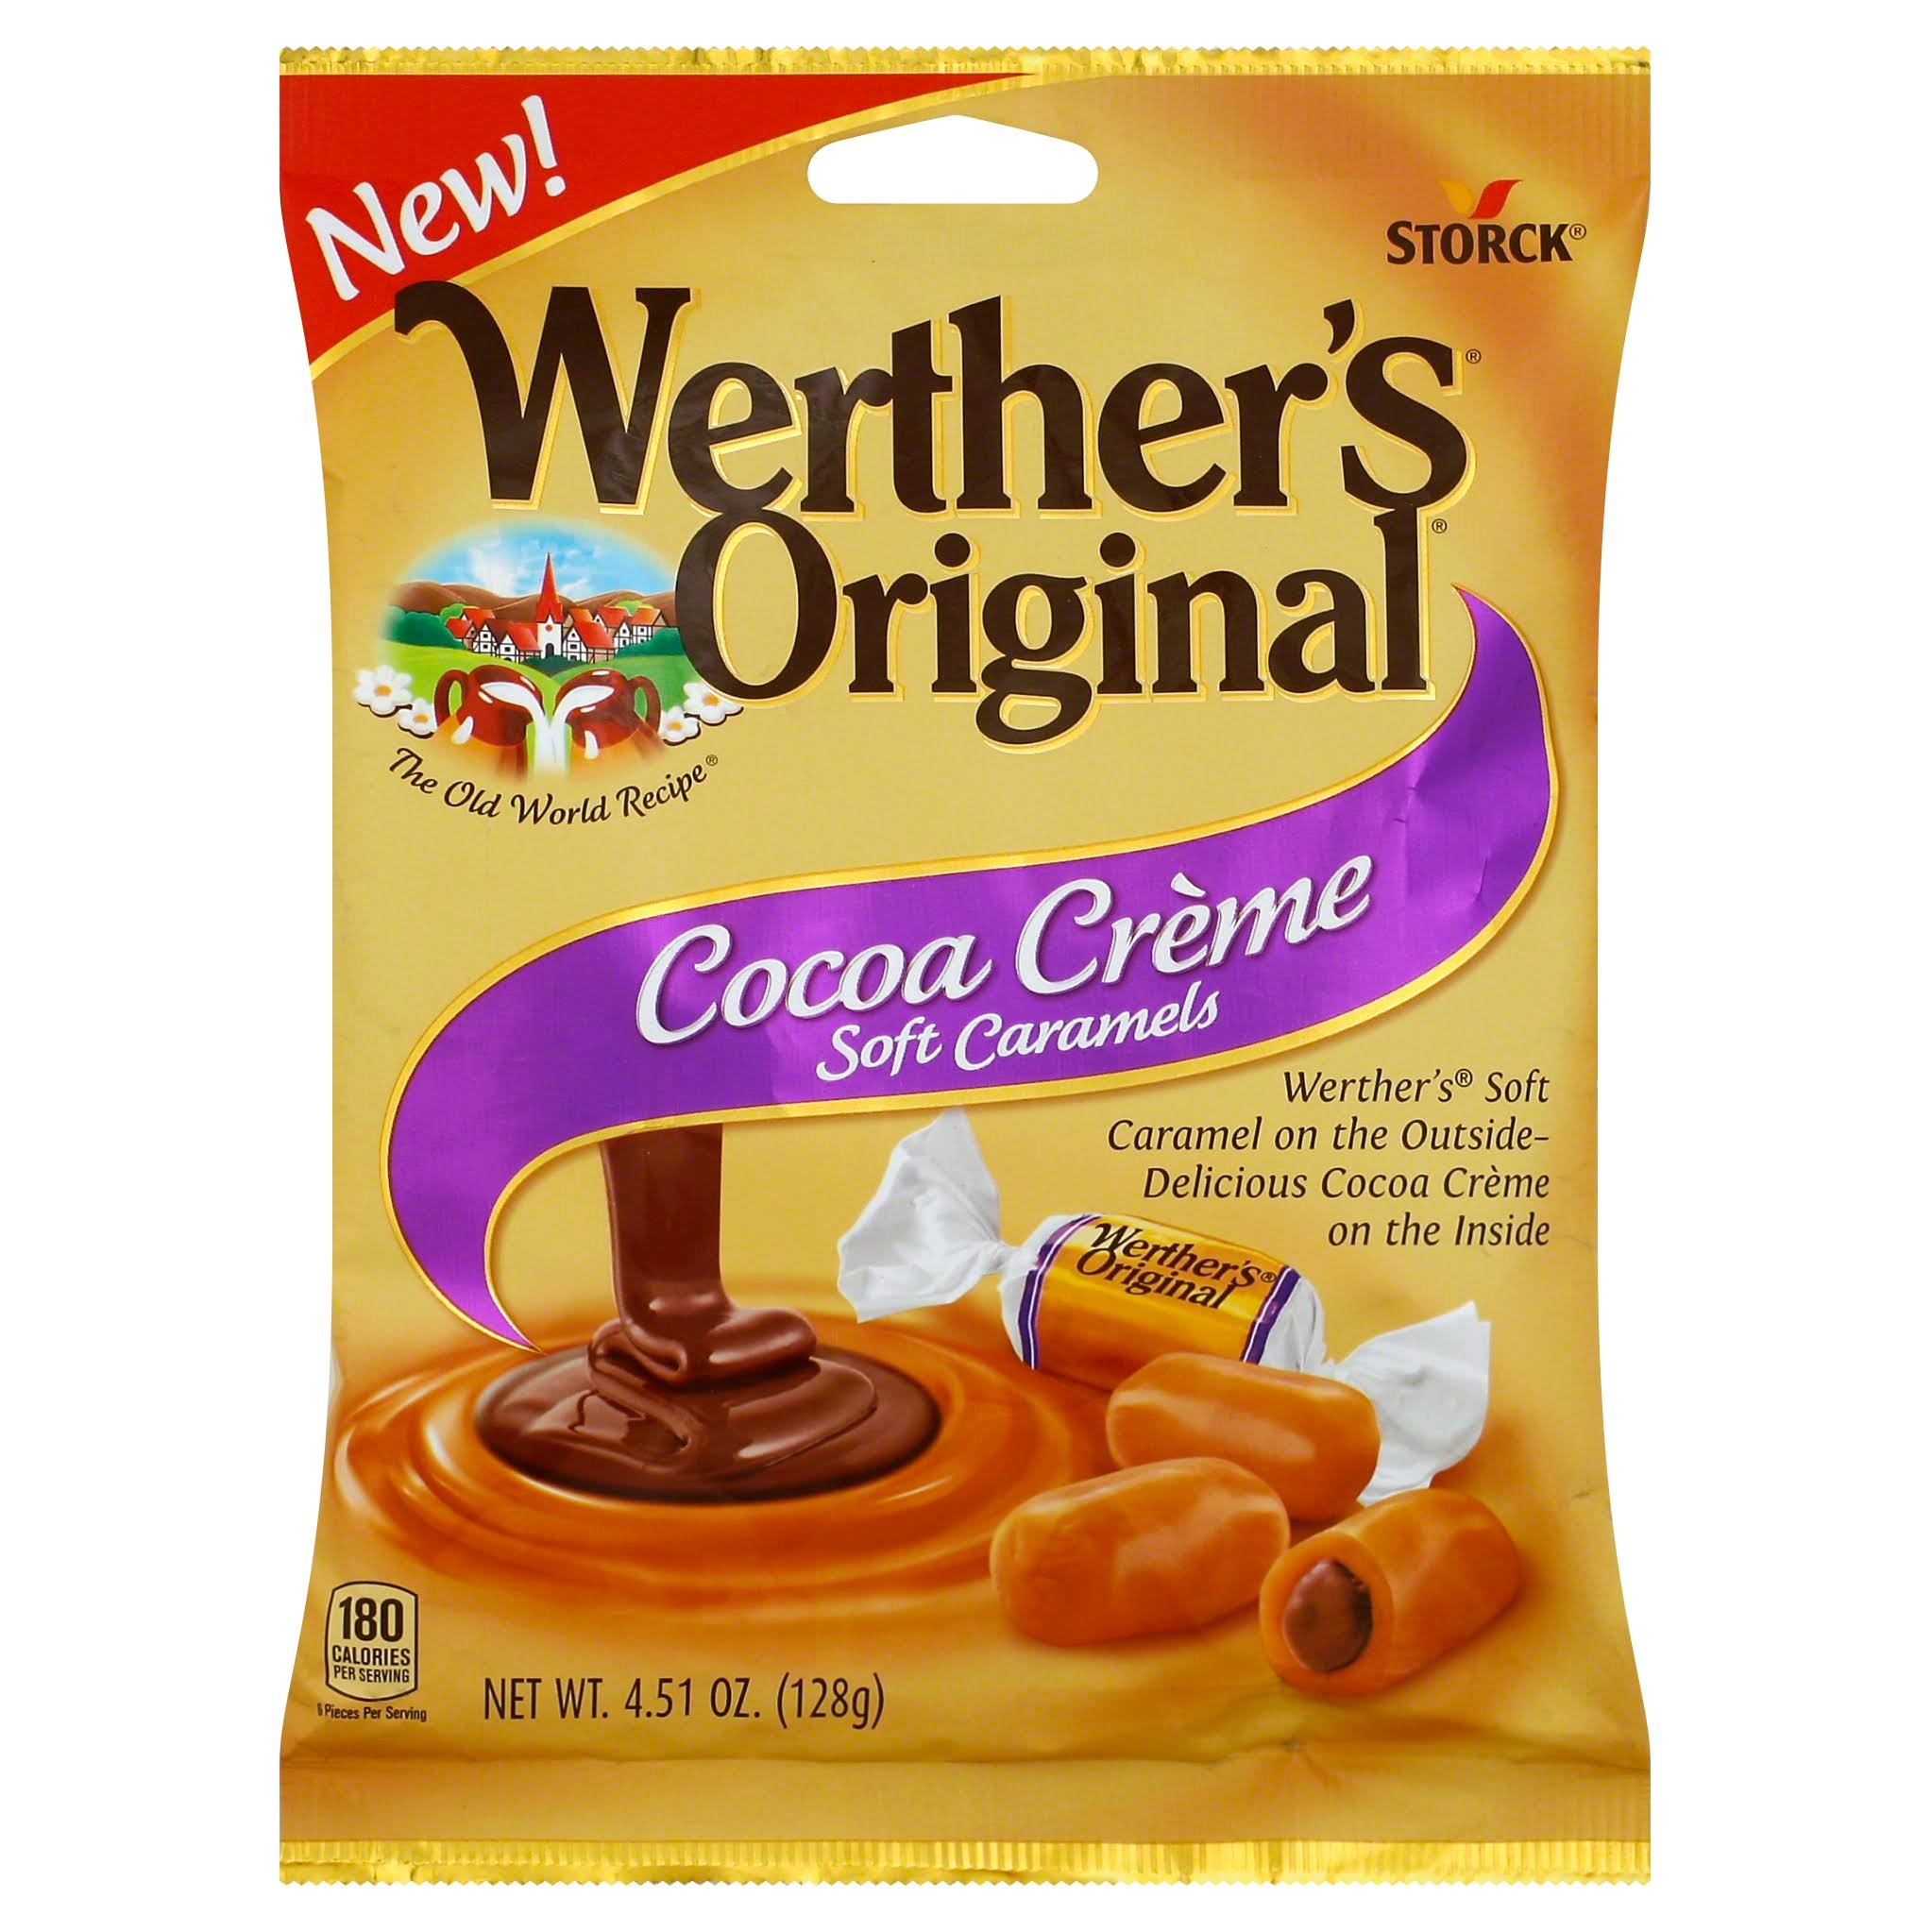 Werther's Original Cocoa Creme Soft Caramels - 5oz